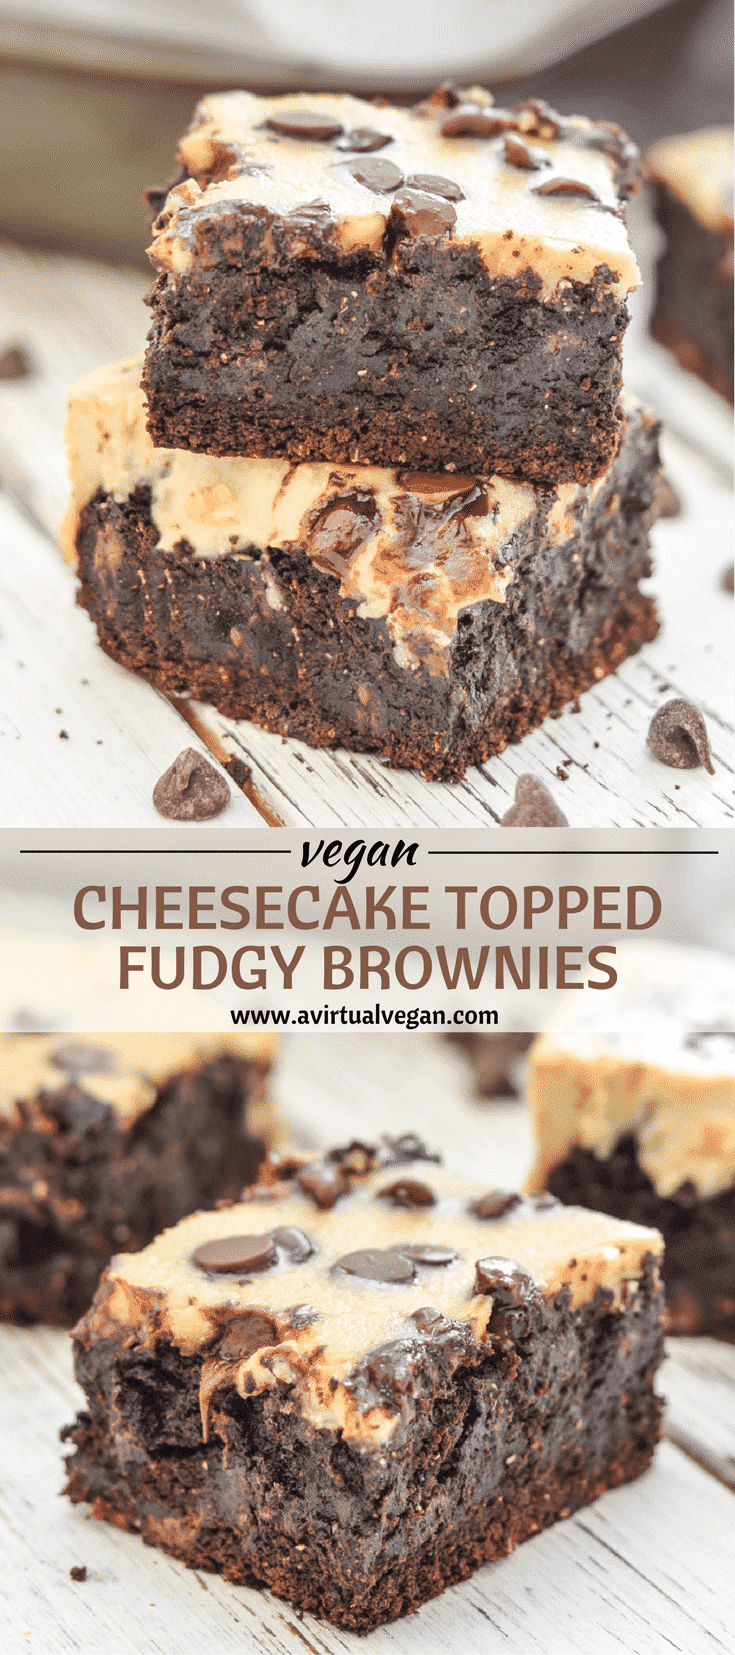 Indulgently rich, extra Fudgy Brownies made even better with a layer of creamy, slightly tart cheesecake & a smattering of chocolate chips. Gooey, chocolate perfection!